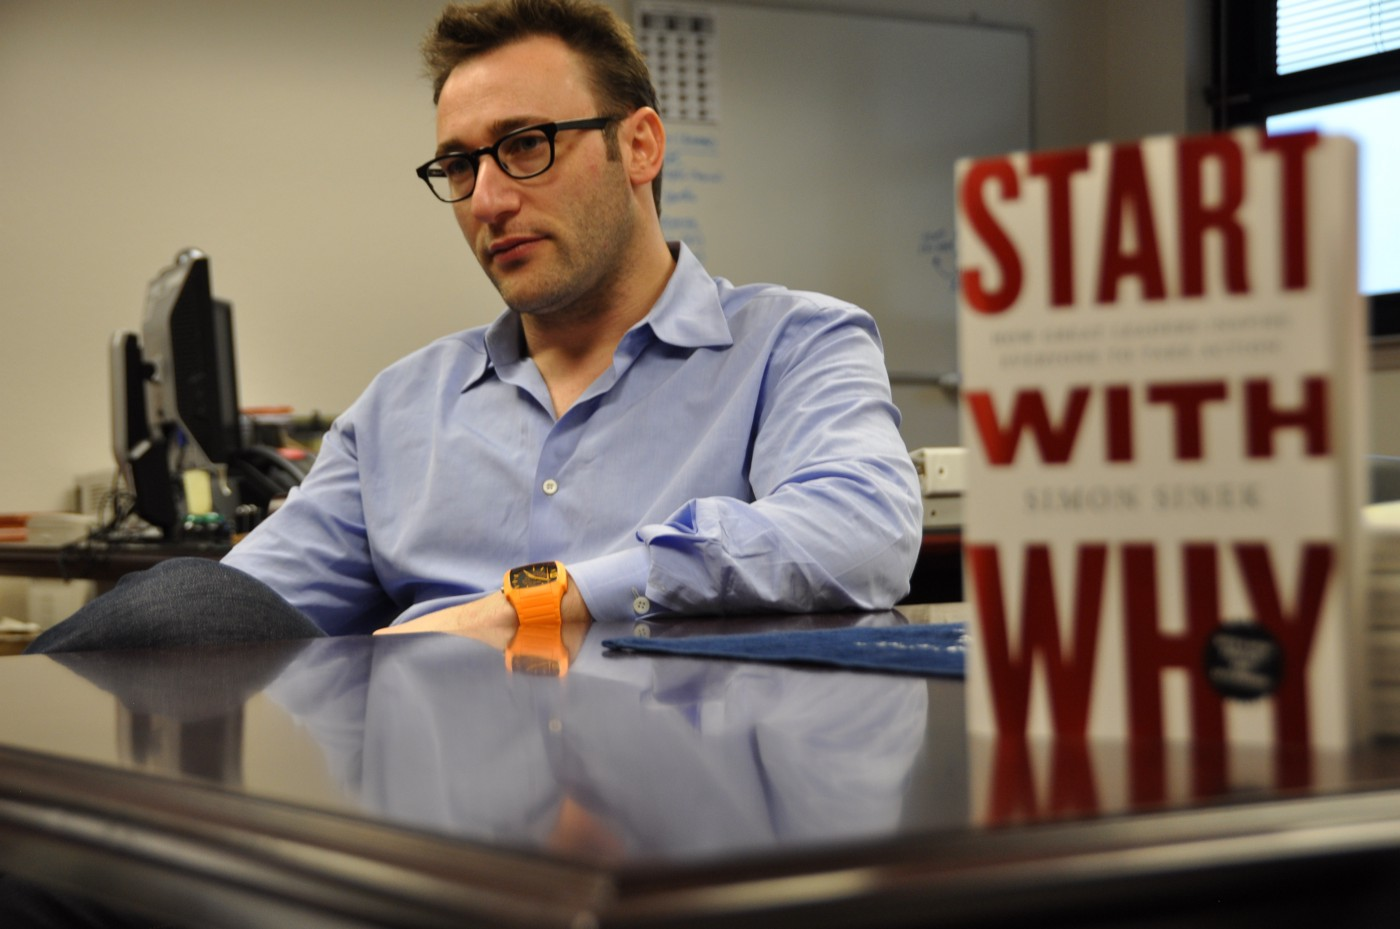 Simon Sinek at Travis Air Force Base with his book Start with Why